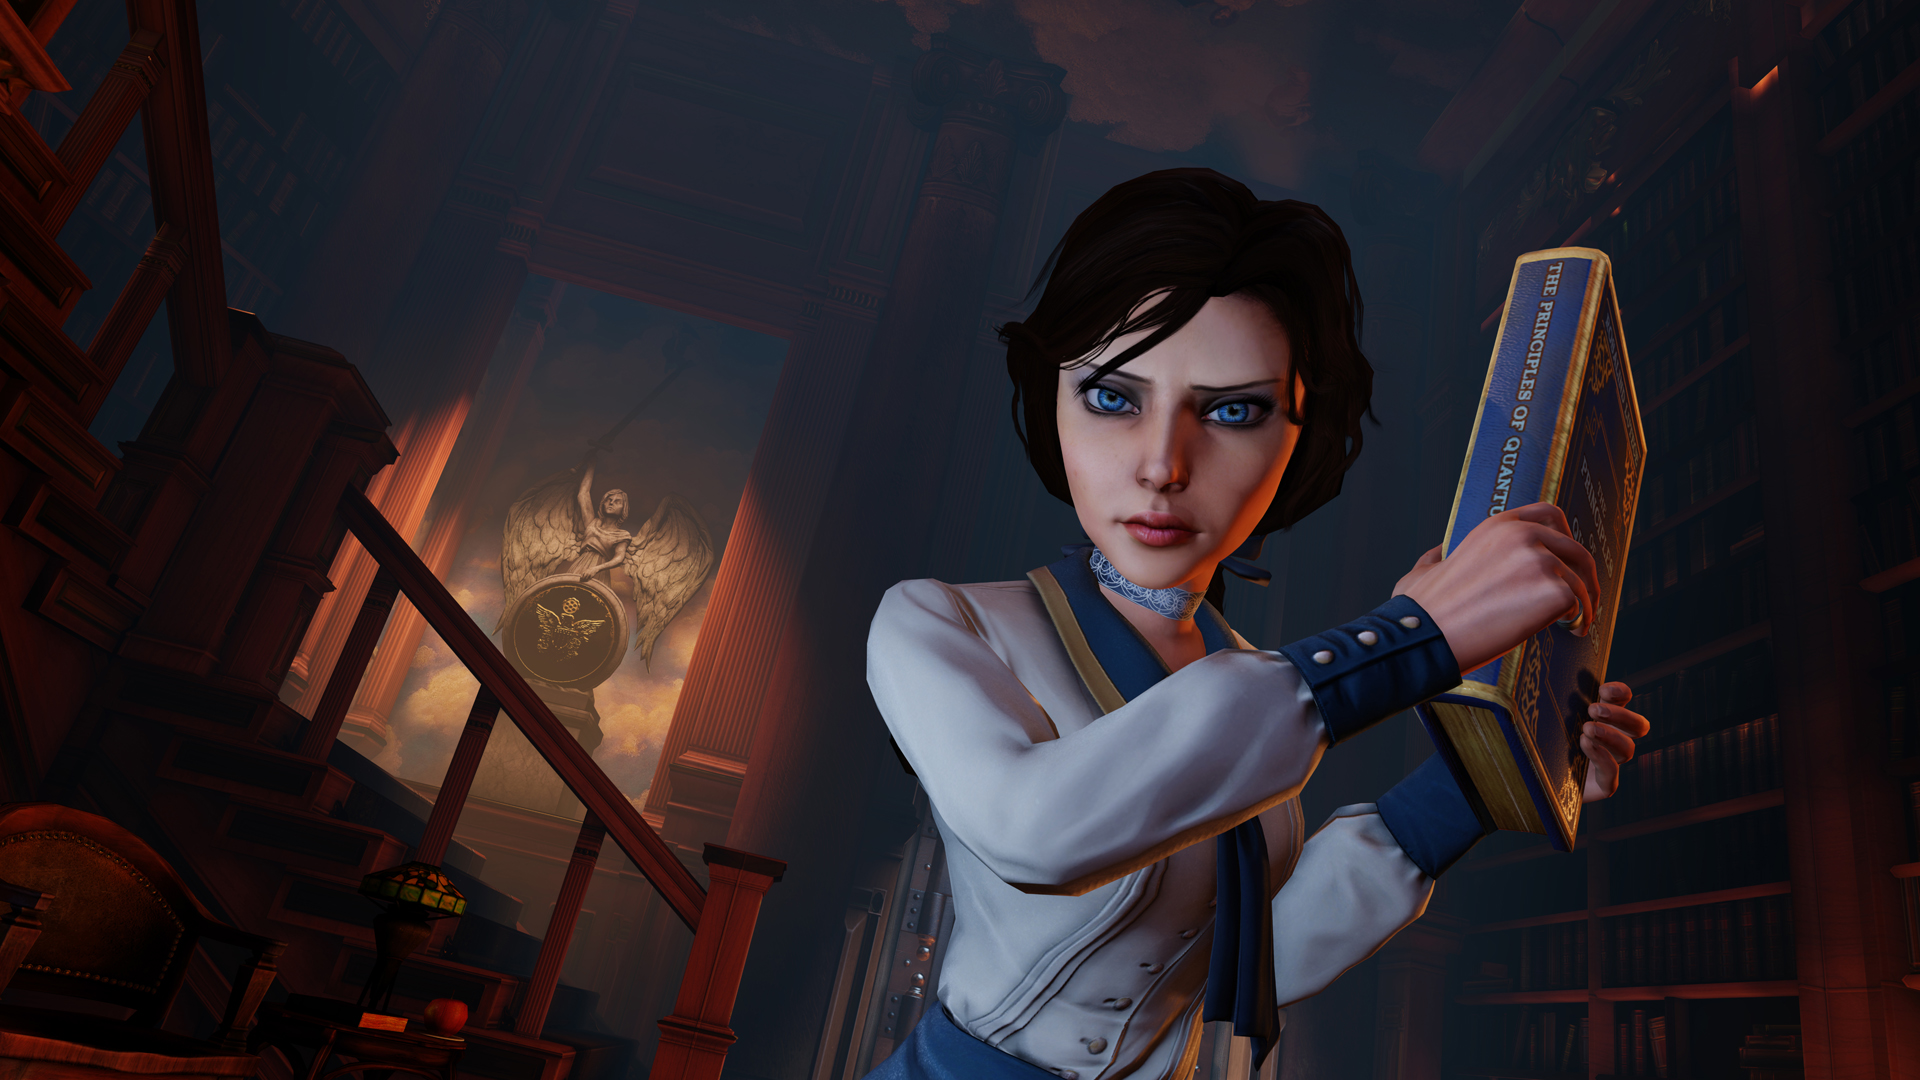 The failure of BioShock Infinite: Writing games like movies